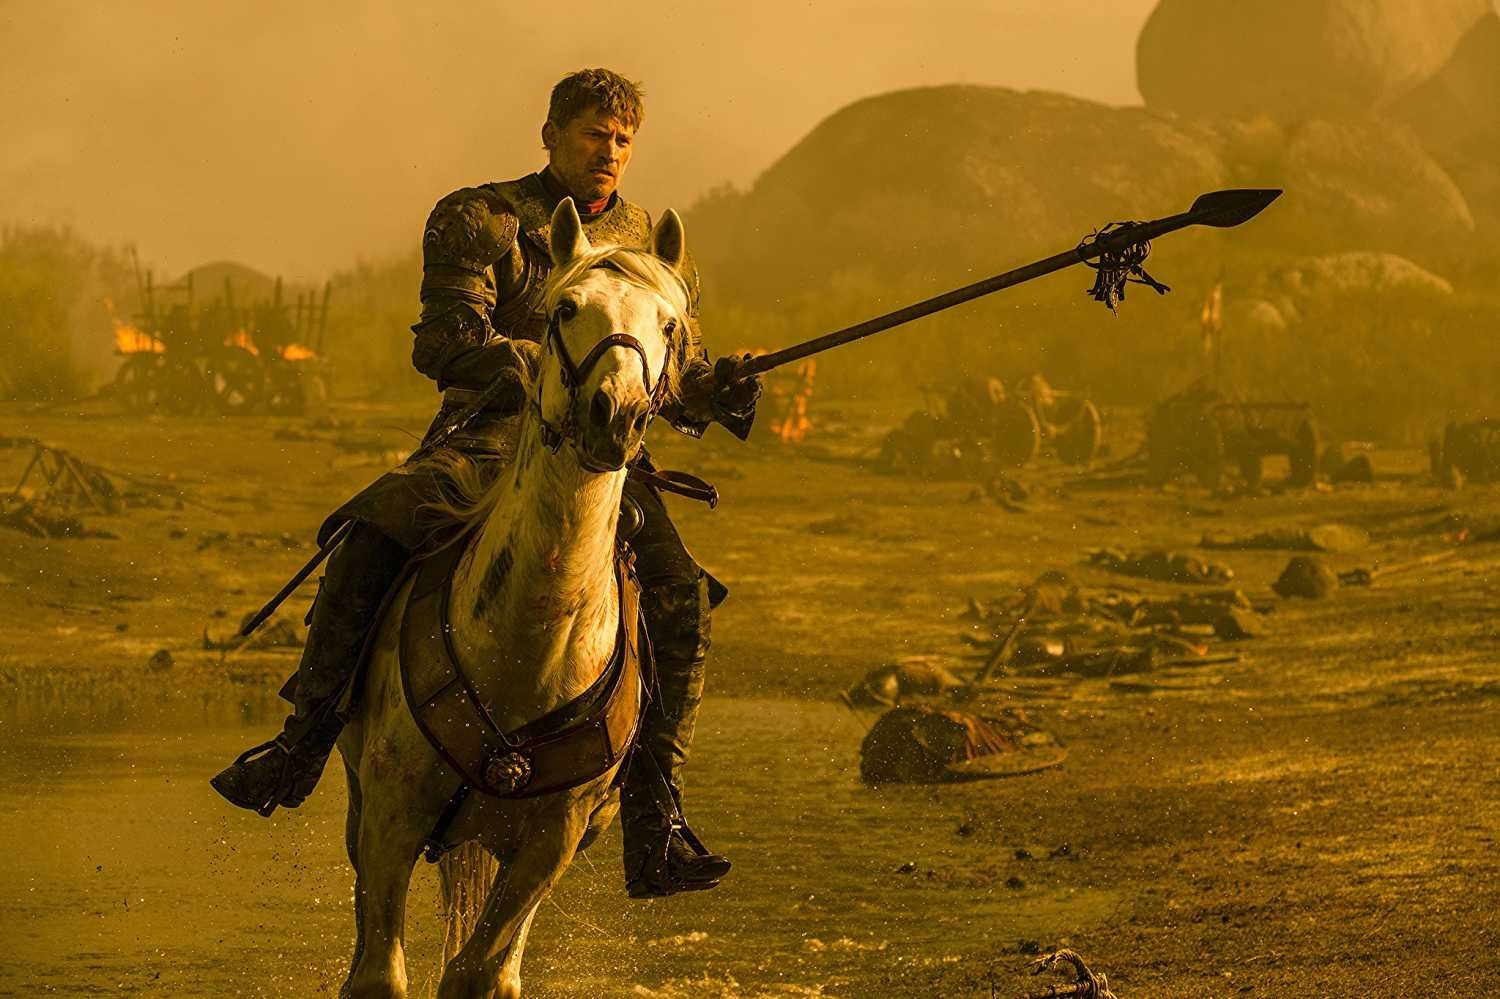 Nikolaj Coster-Waldau as Jaime Lannister in 'Game of Thrones'. Source: IMDB